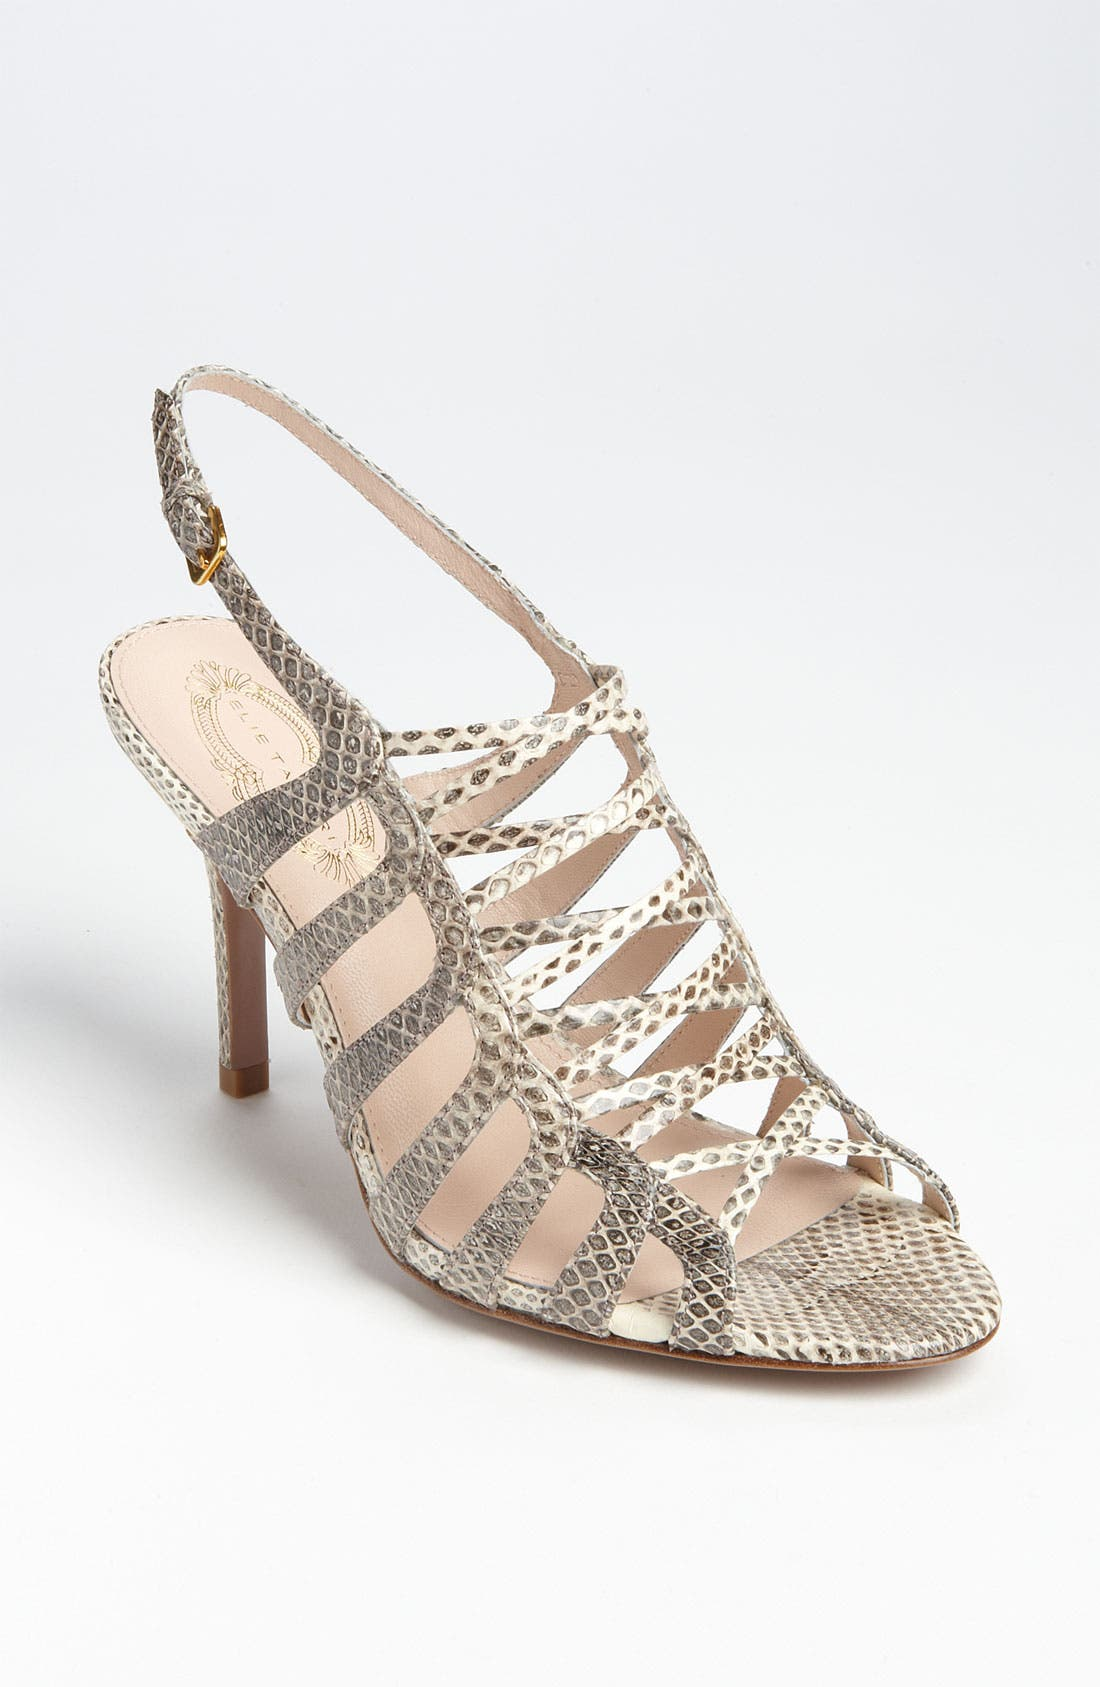 Alternate Image 1 Selected - Elie Tahari 'Brinley' Sandal